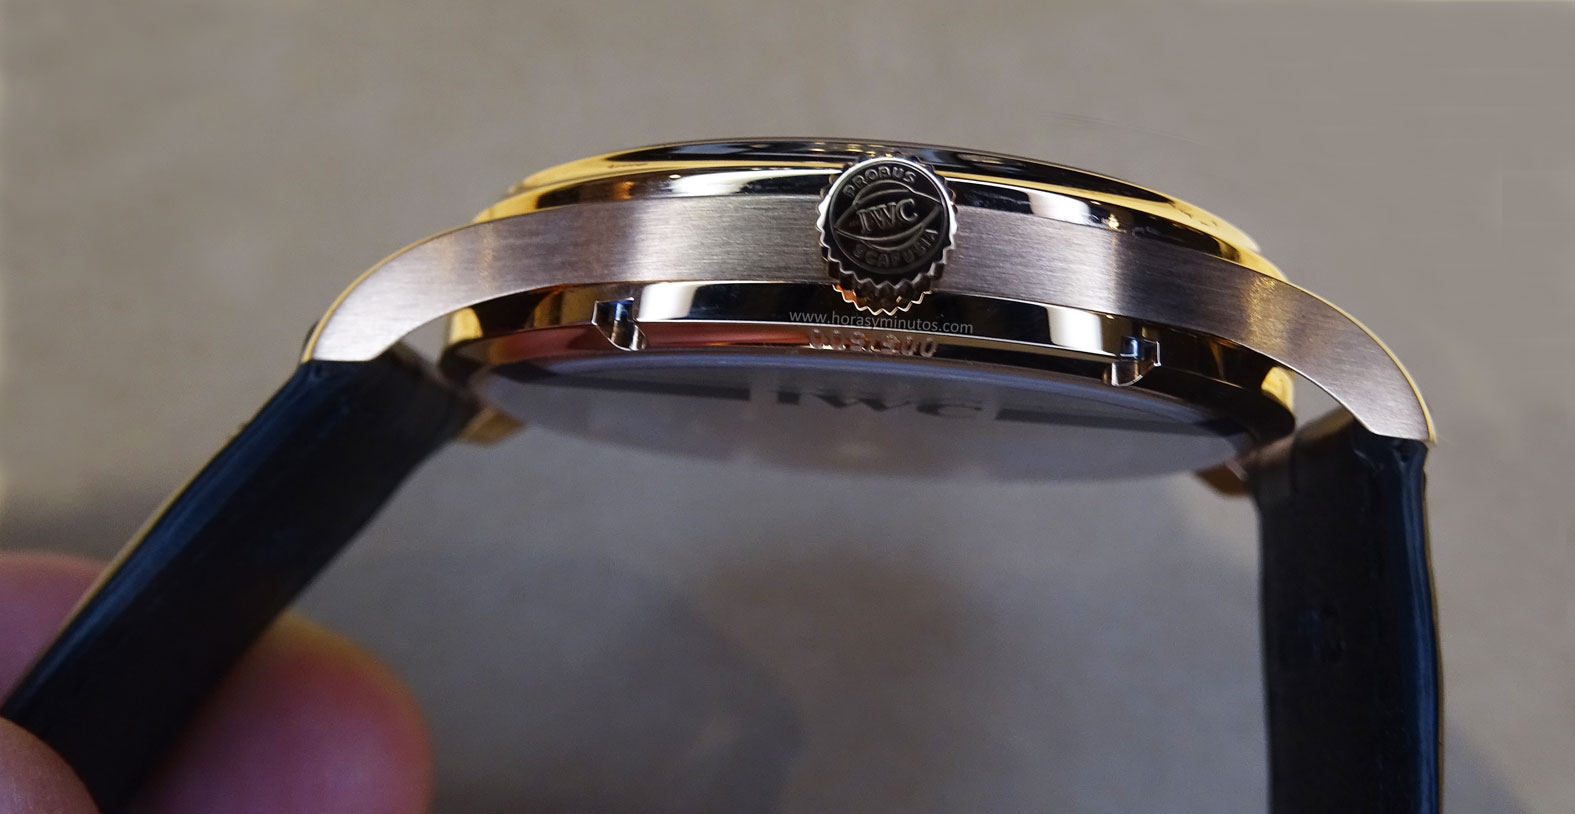 IWC Portugues Tourbillon Manual Jones corona